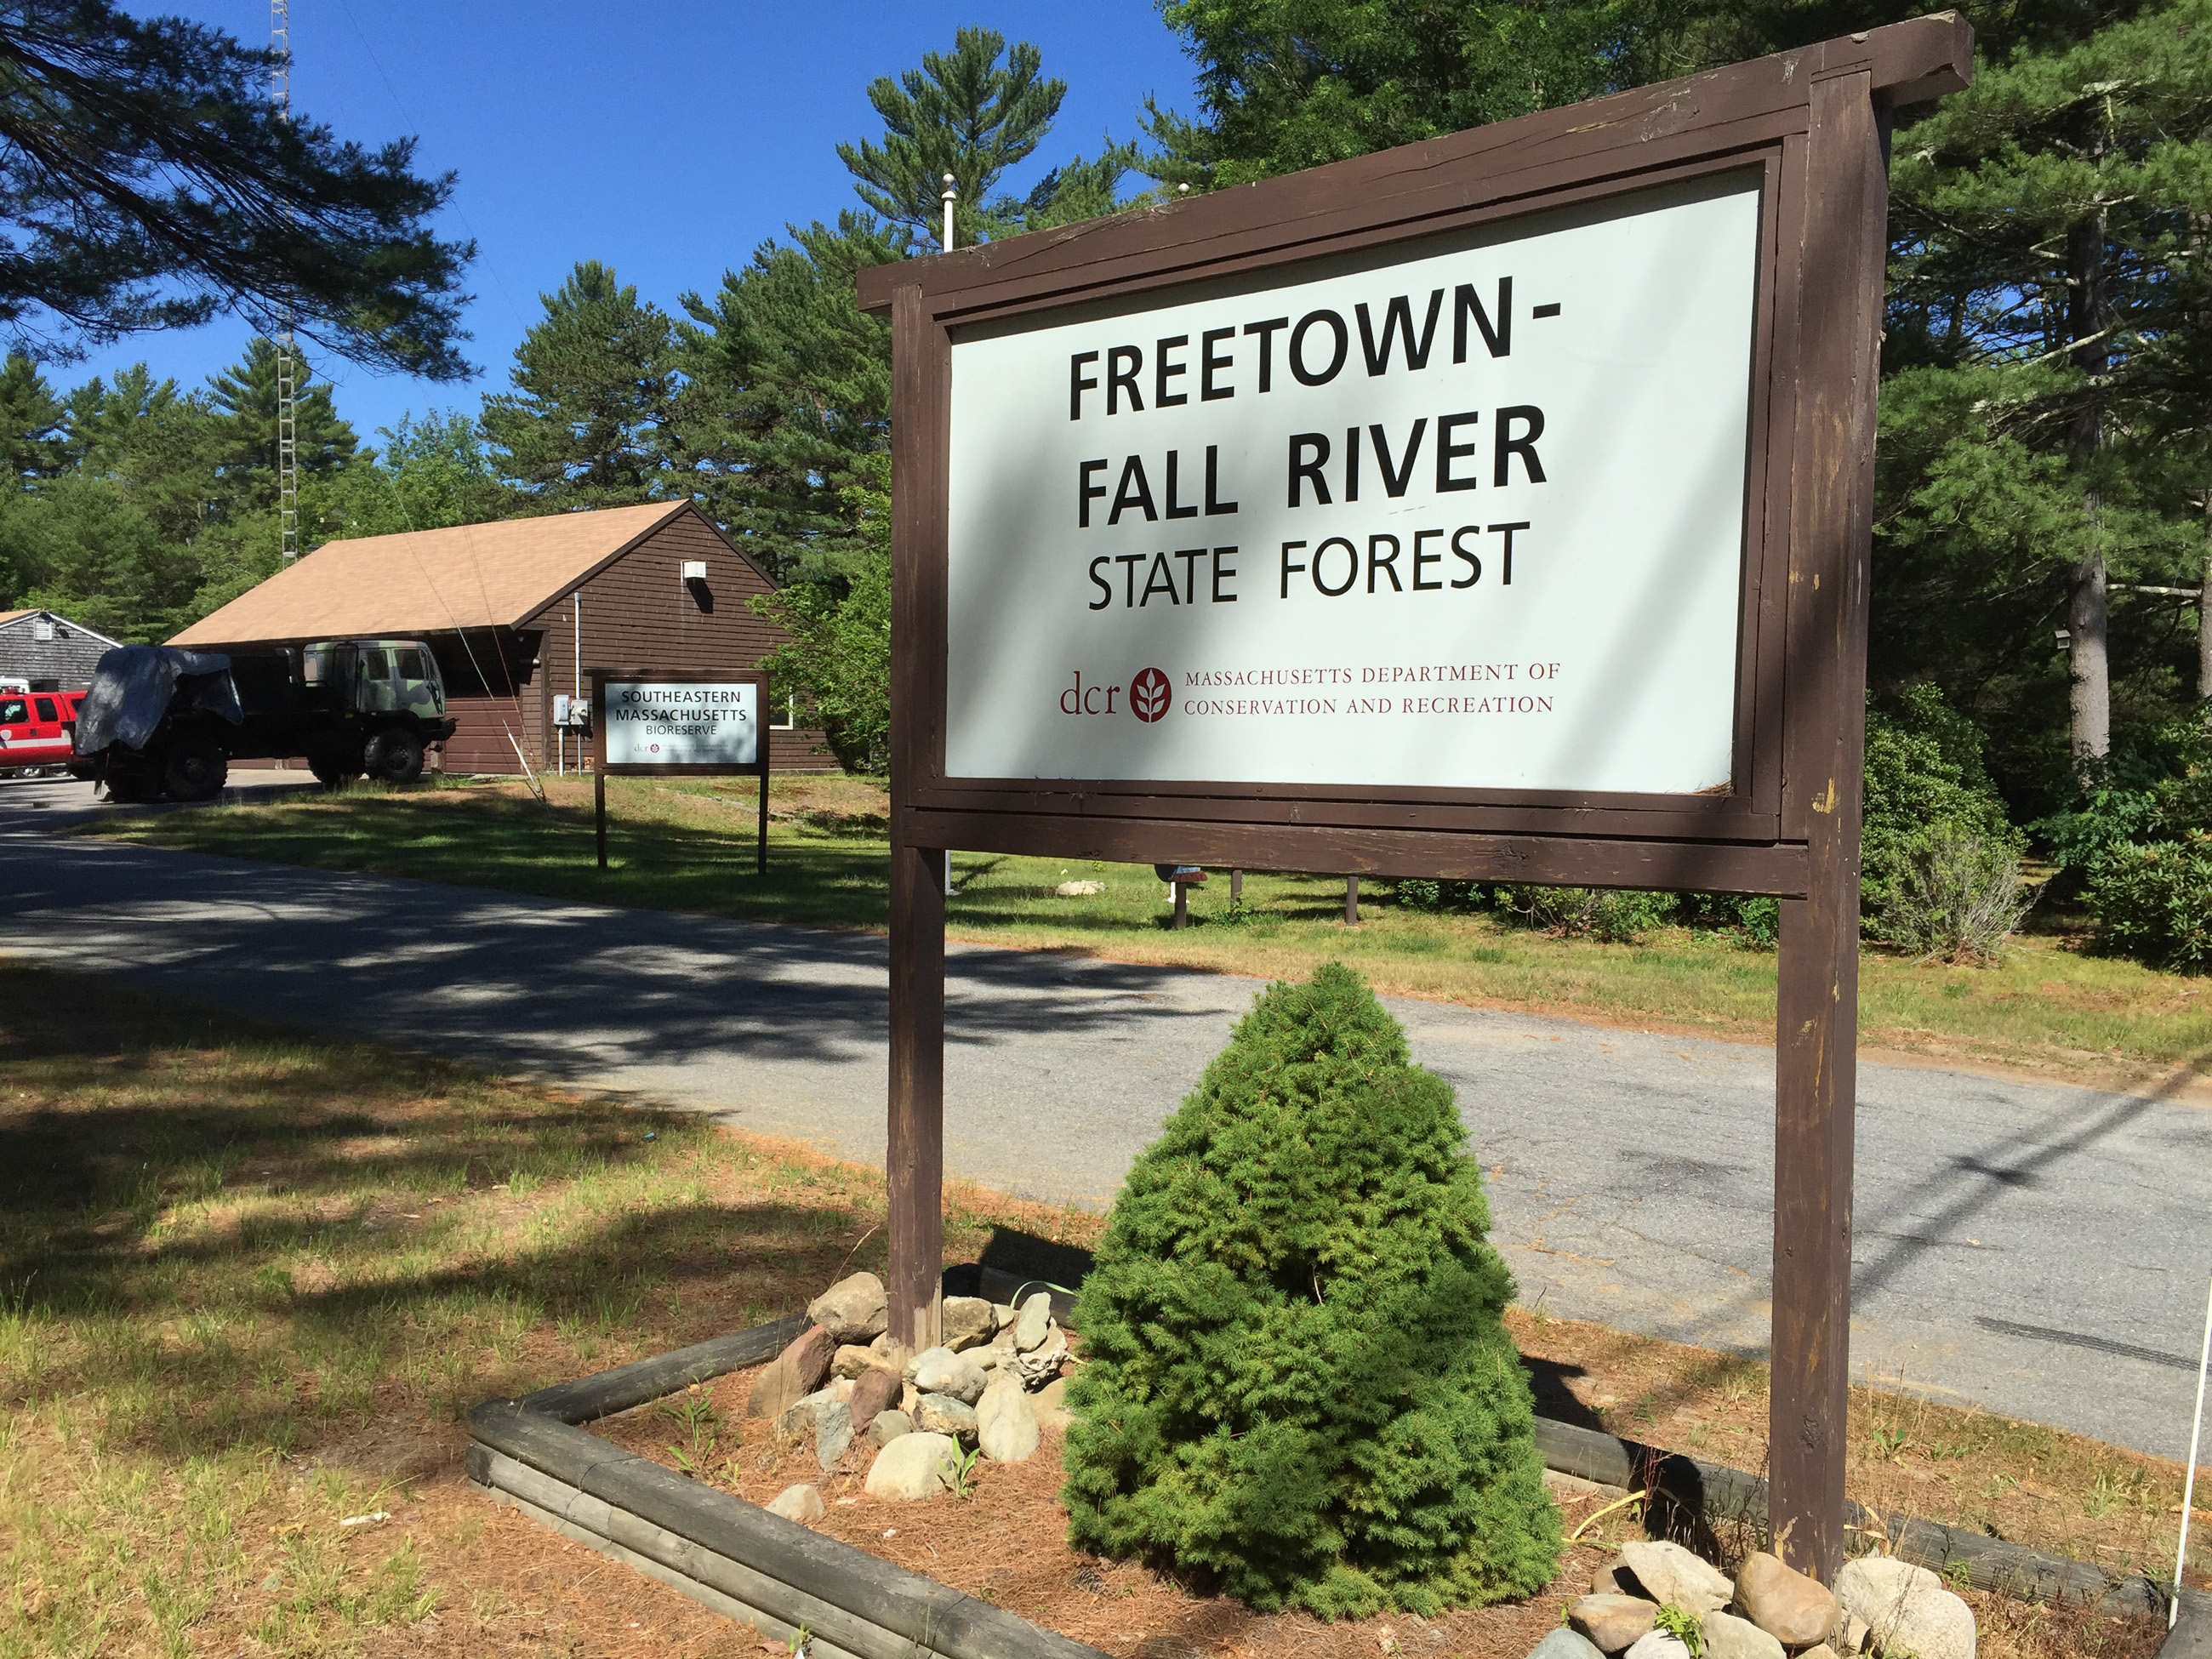 freetown - fall river state forest